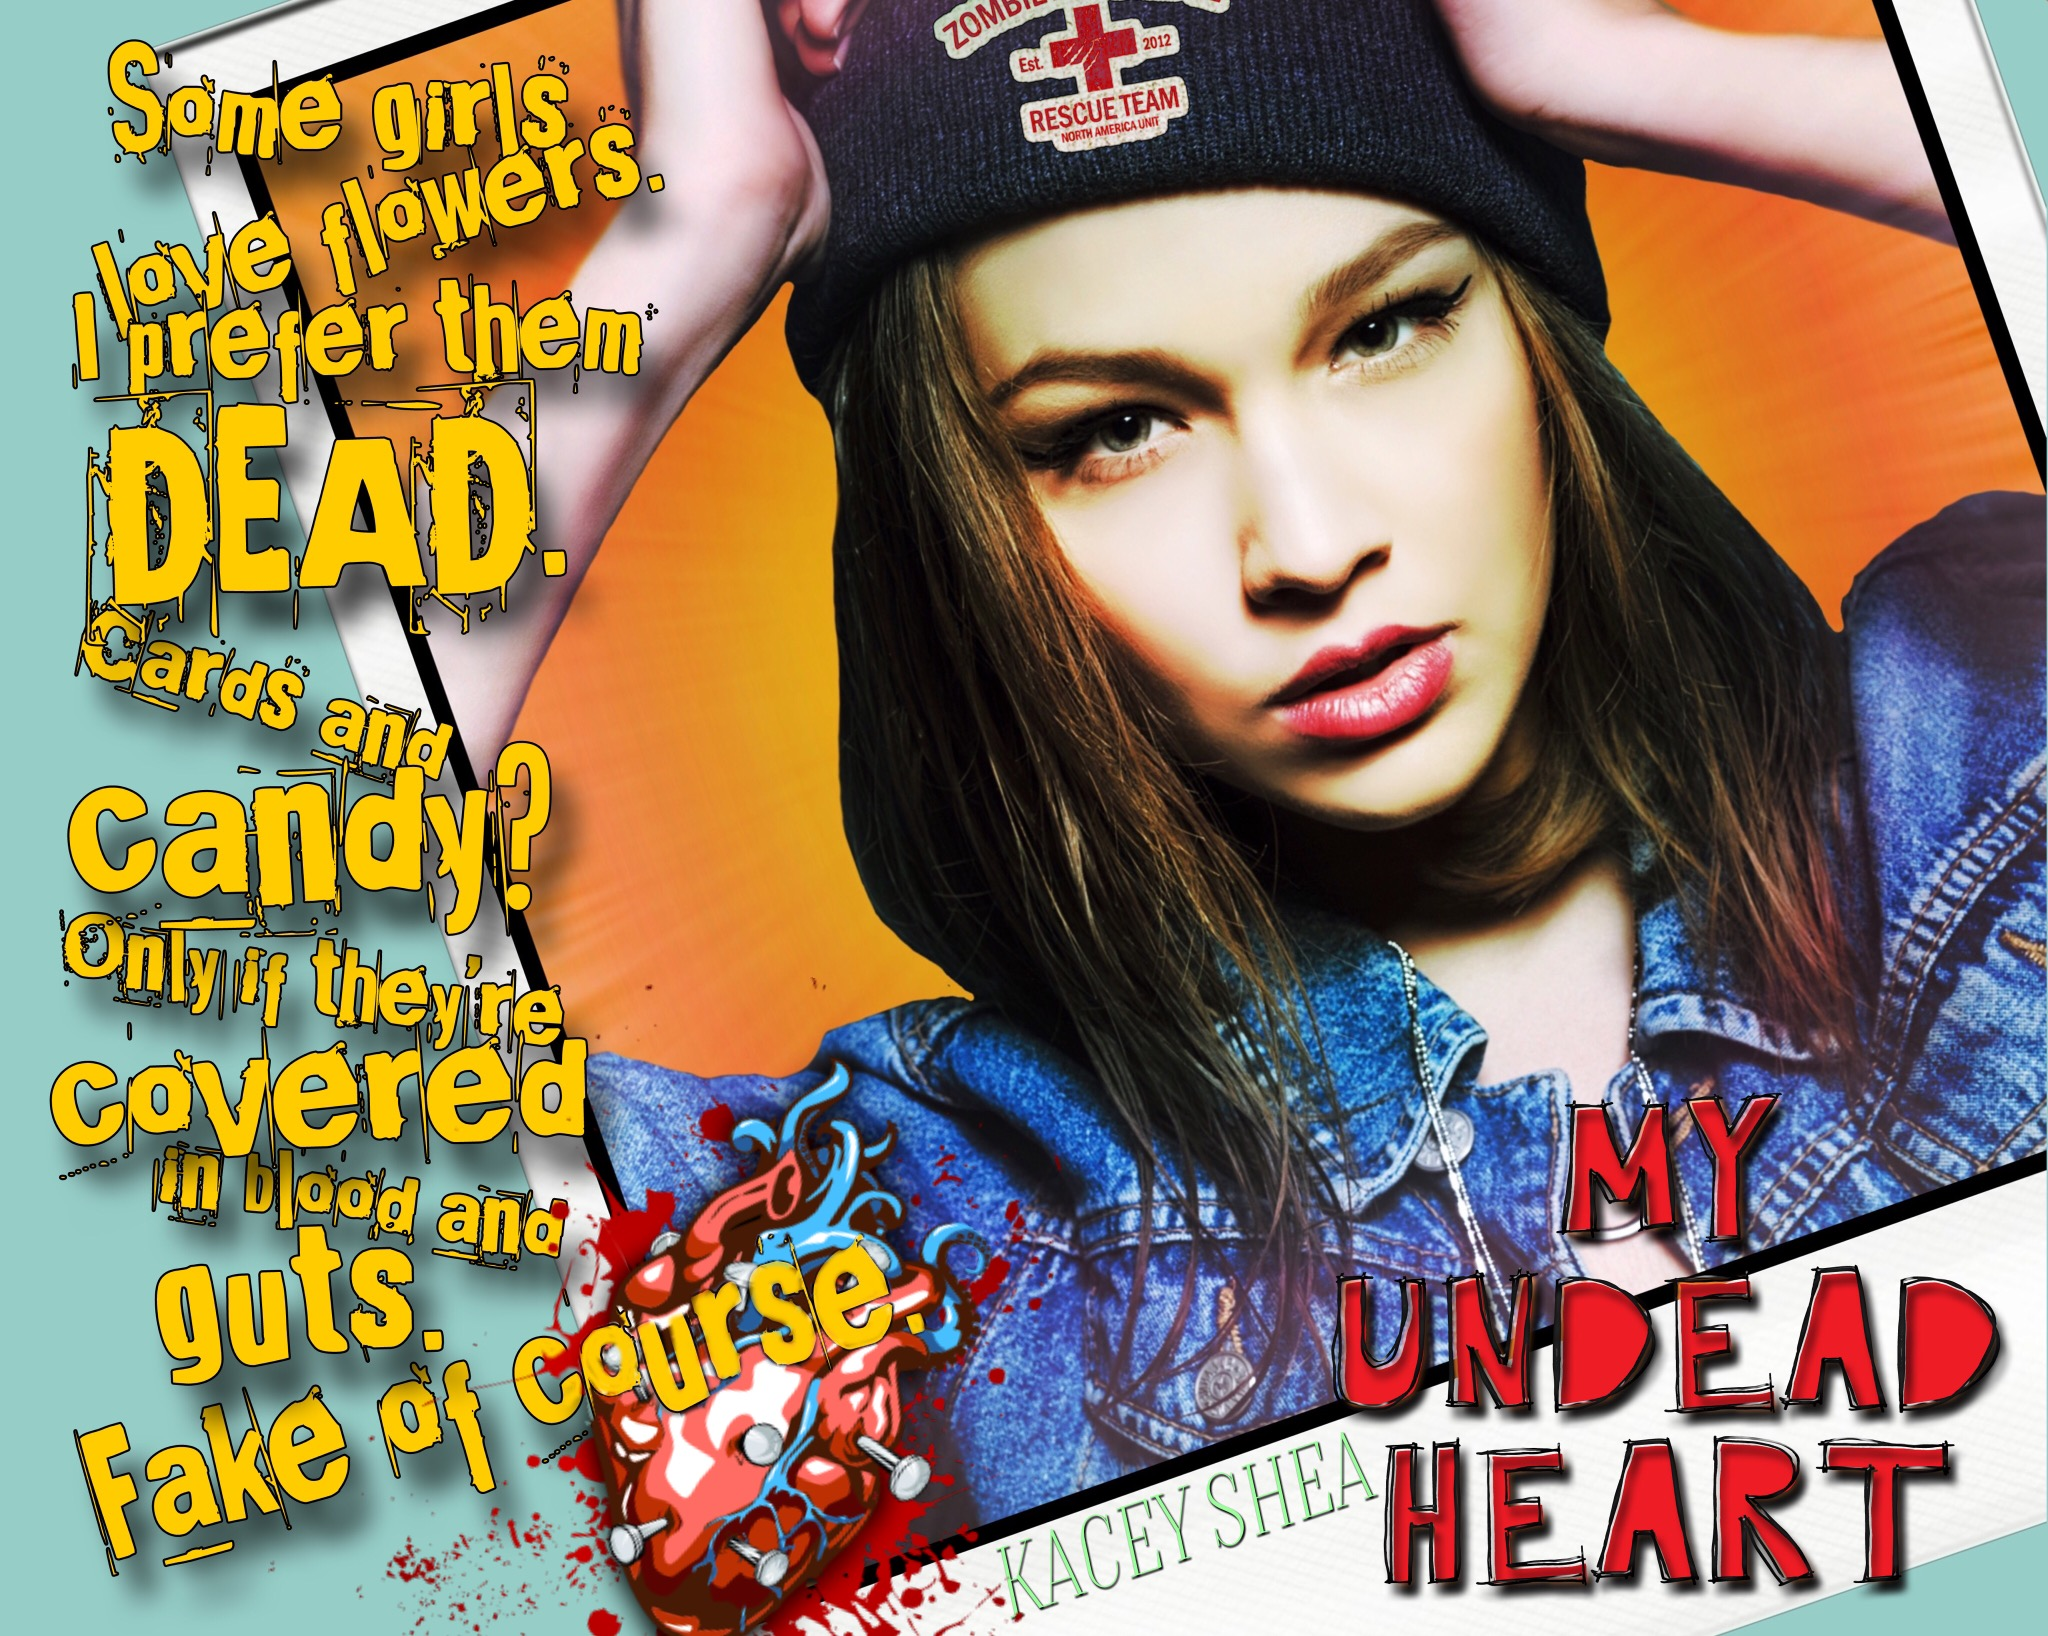 My Undead Heart by Kacey Shea